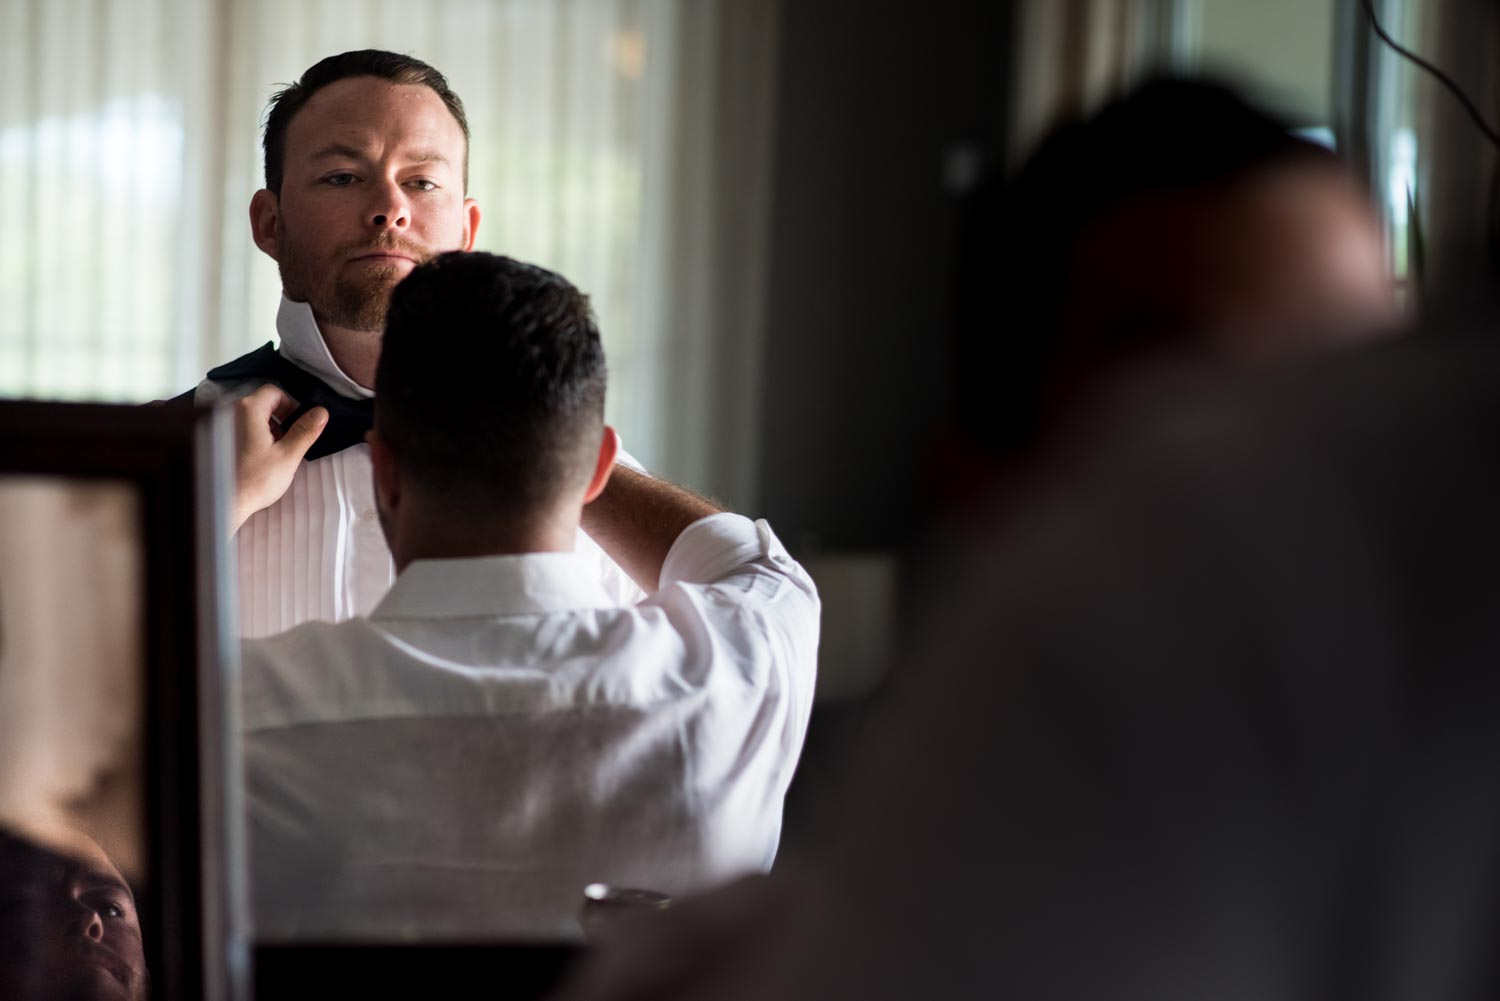 Grooms best man helps the groom tie his bowtie in a mirror before the wedding ceremony.